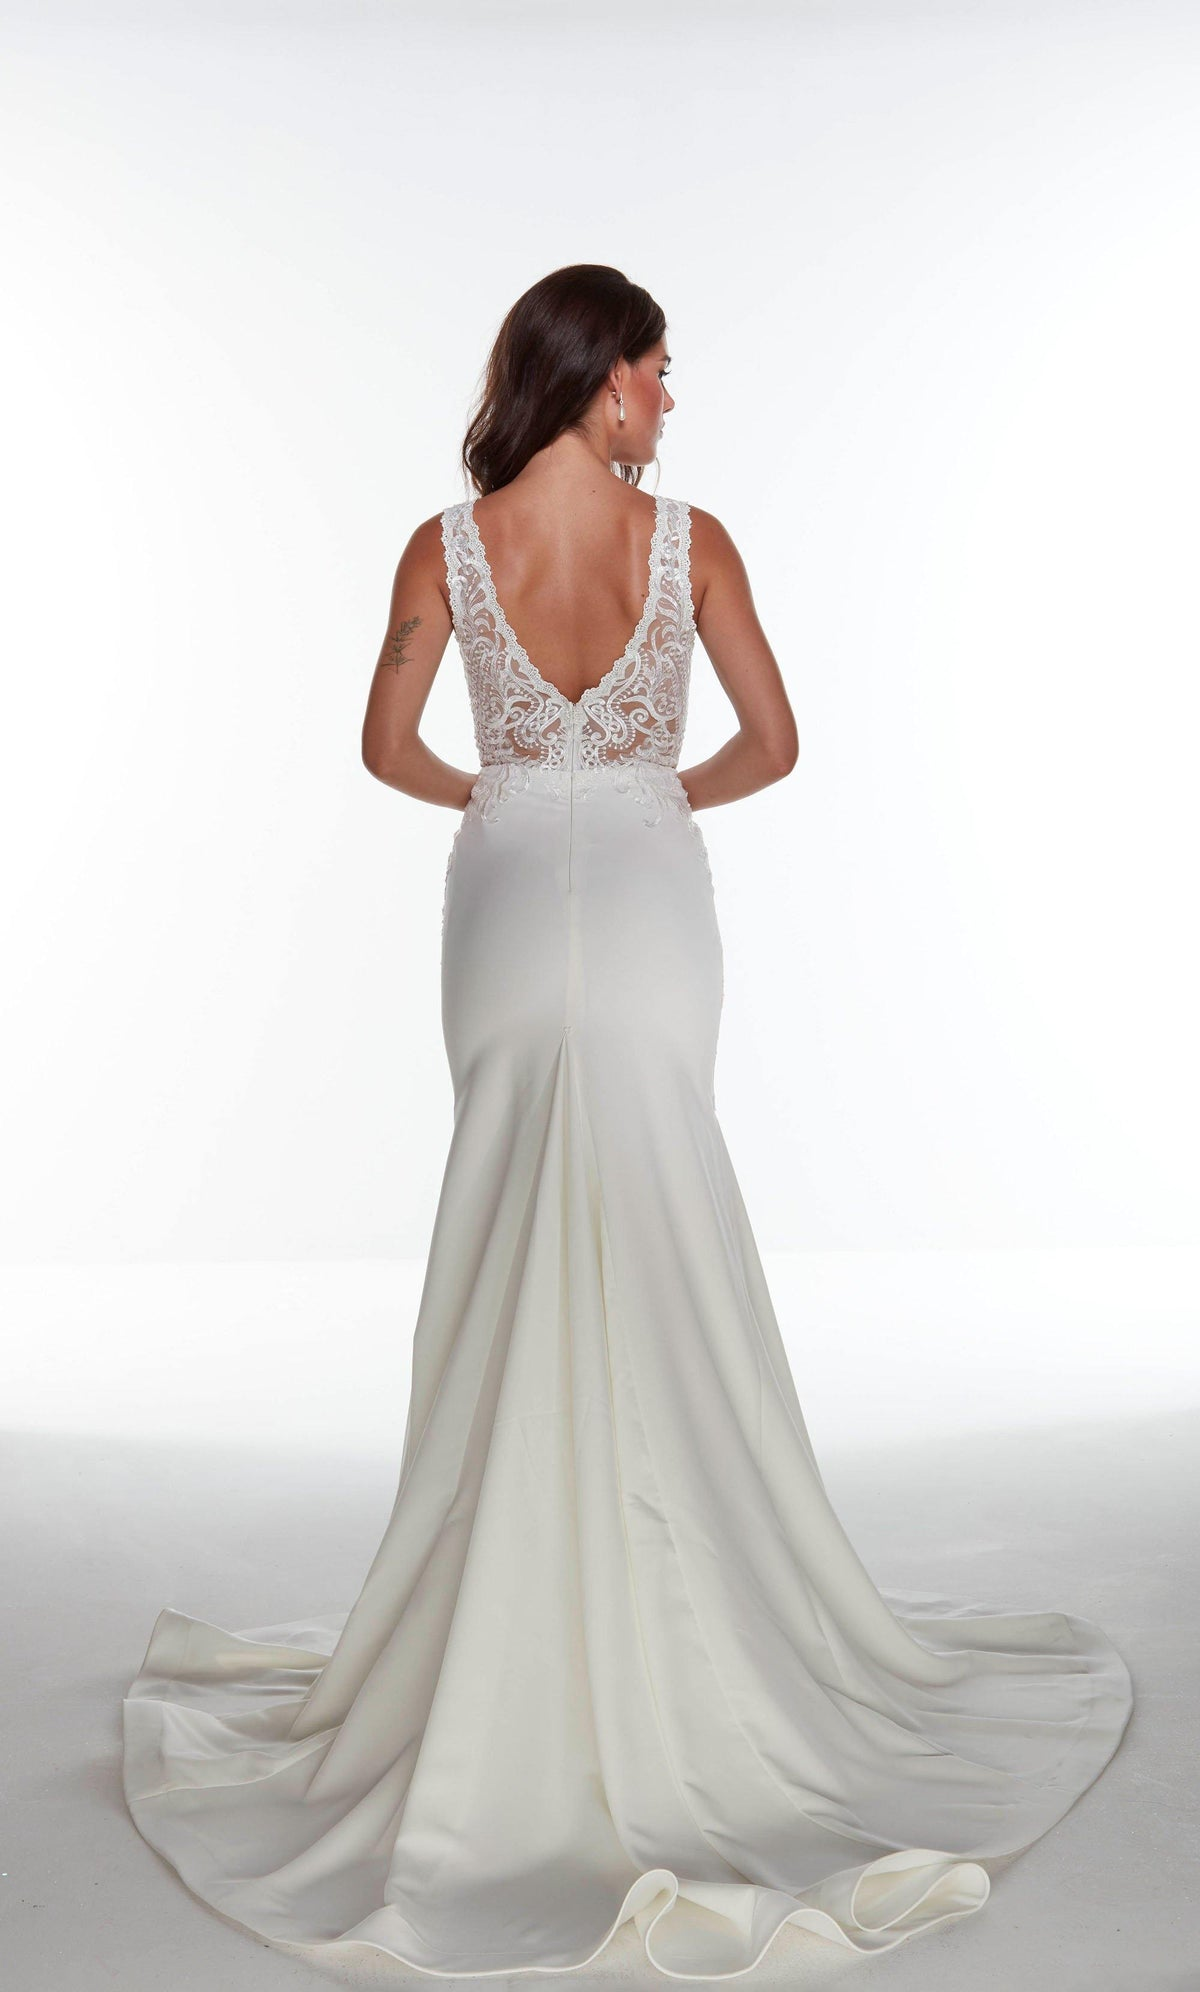 Ivory fit and flare informal bridal gown with a sheer lace bodice, V shaped back, and train